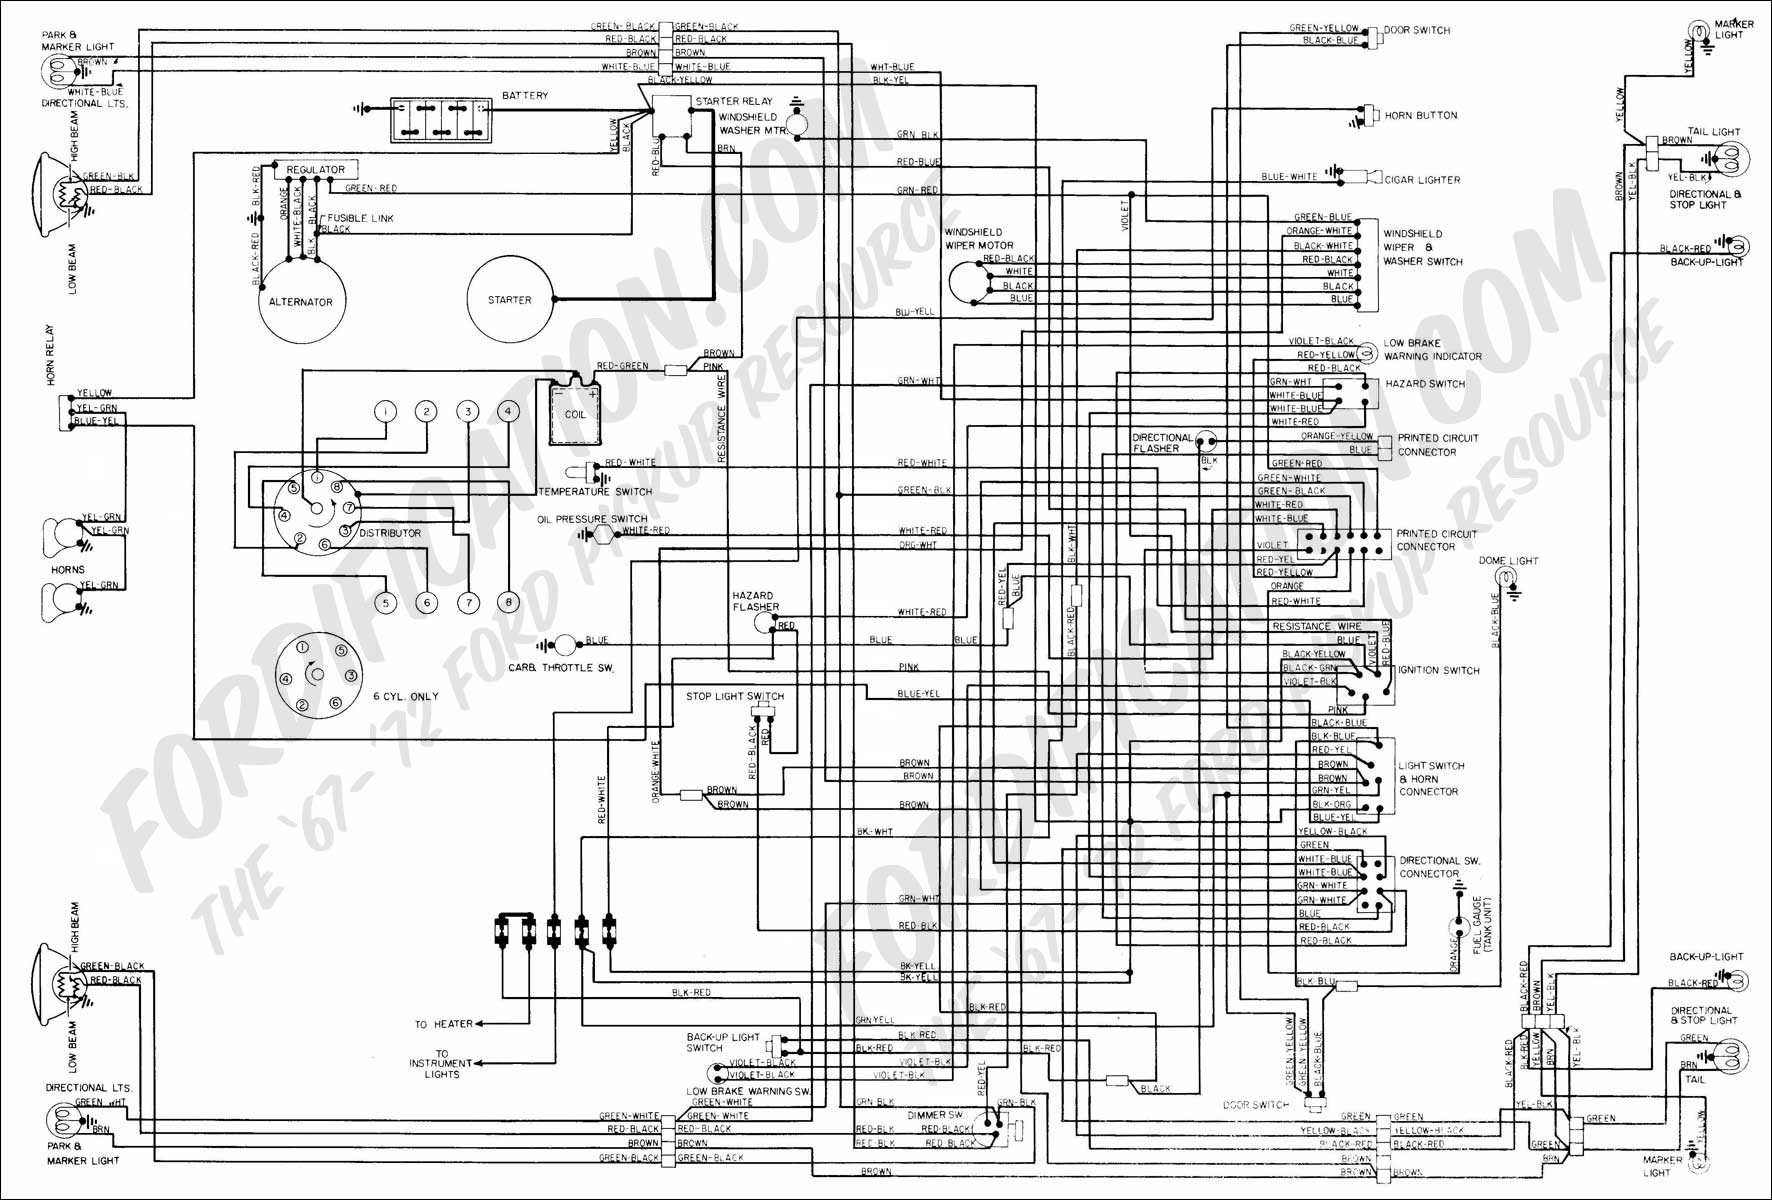 2004 ford Explorer Engine Diagram ford F350 Wiring Diagram 5 Lenito Of 2004 ford Explorer Engine Diagram